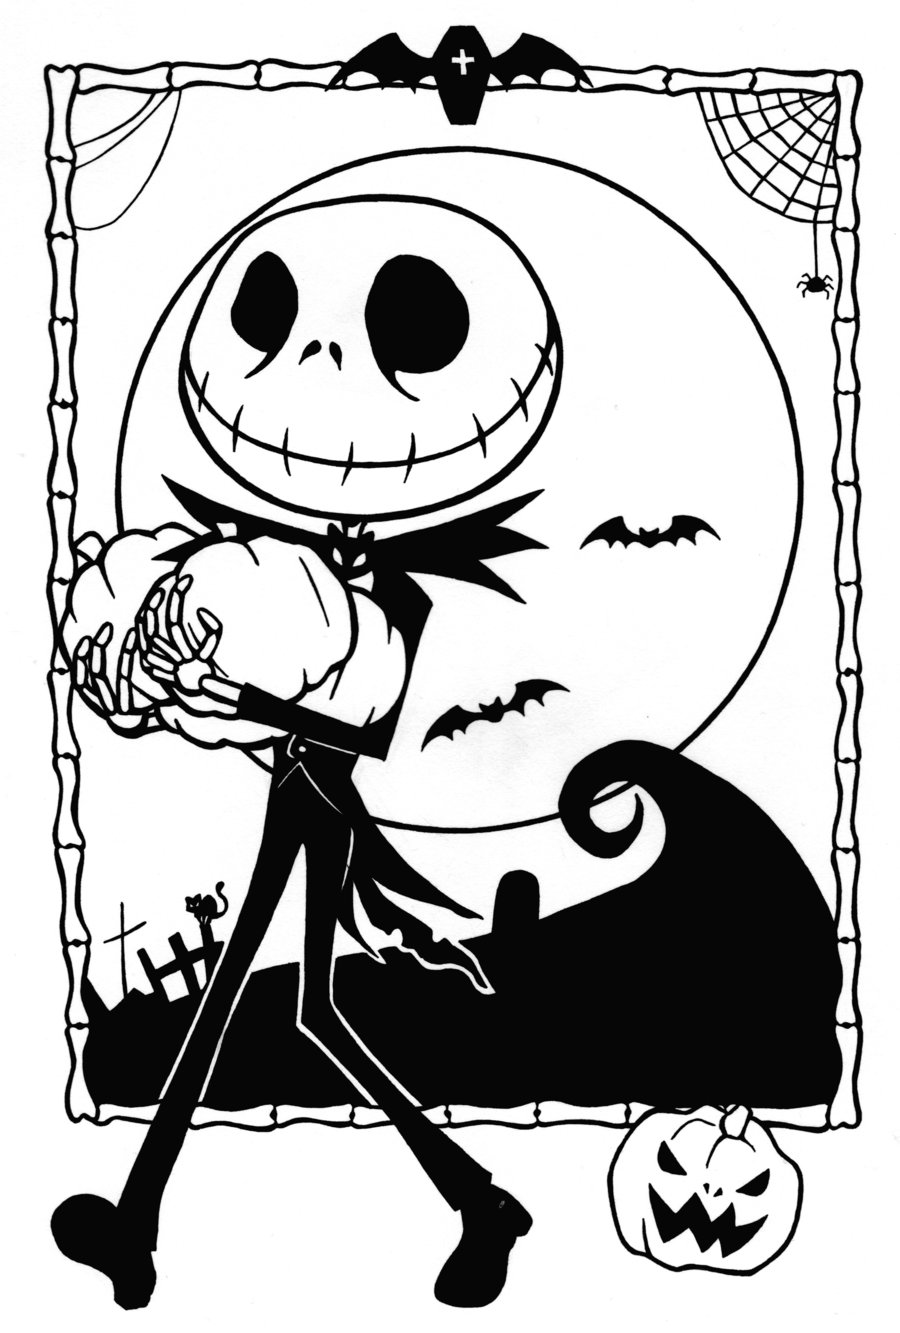 printable halloween coloring pages free printable nightmare before christmas coloring pages halloween pages coloring printable